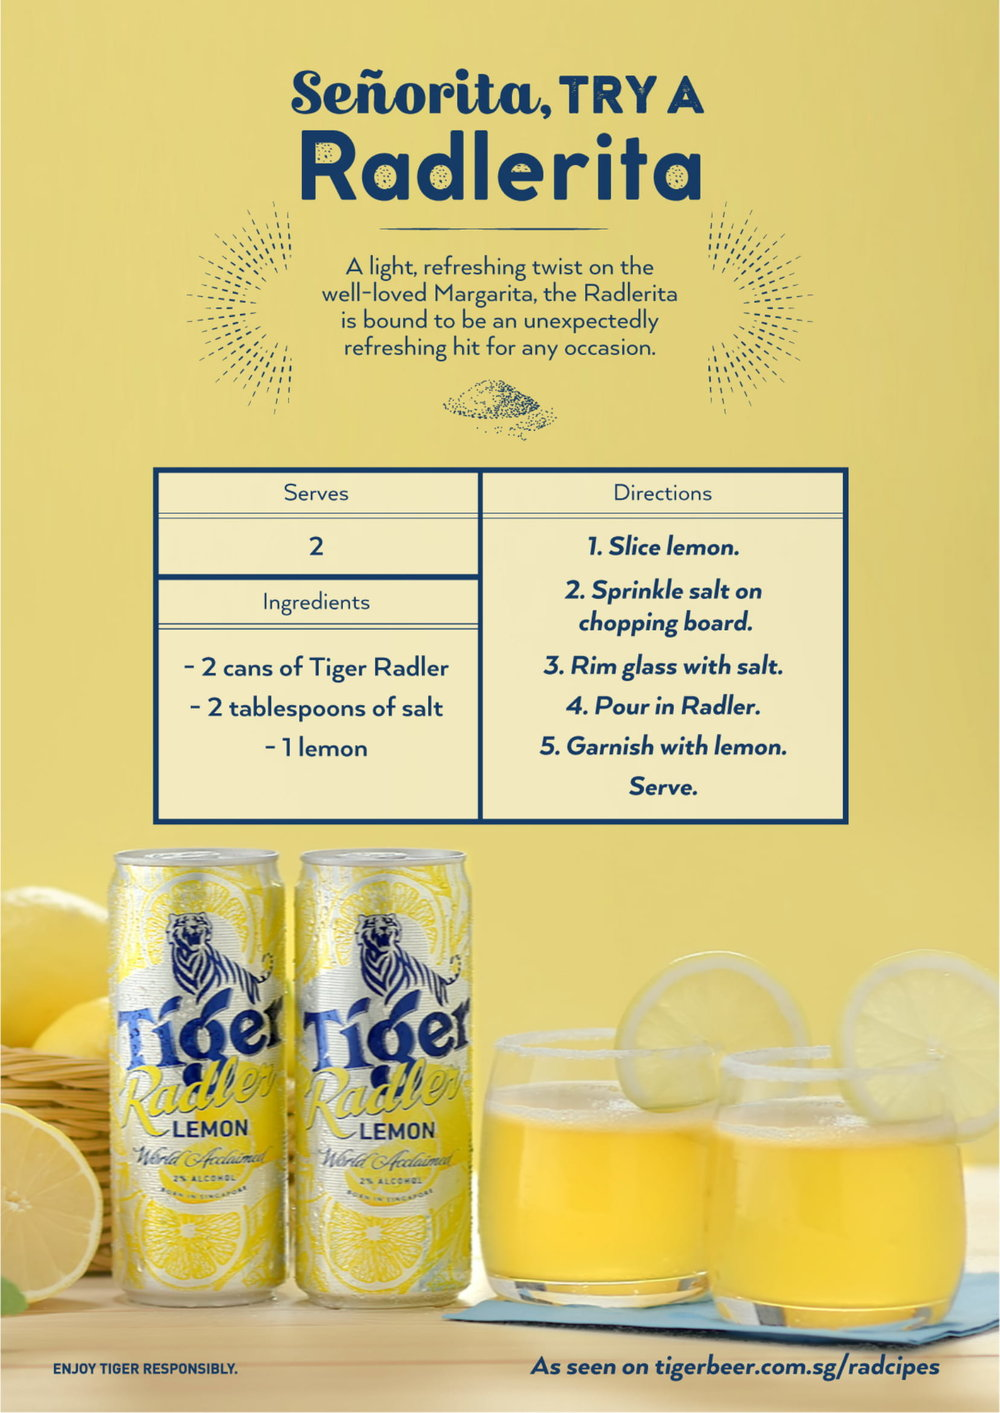 Tiger Radler Radcipes_eBook_20180418_final-3.jpg